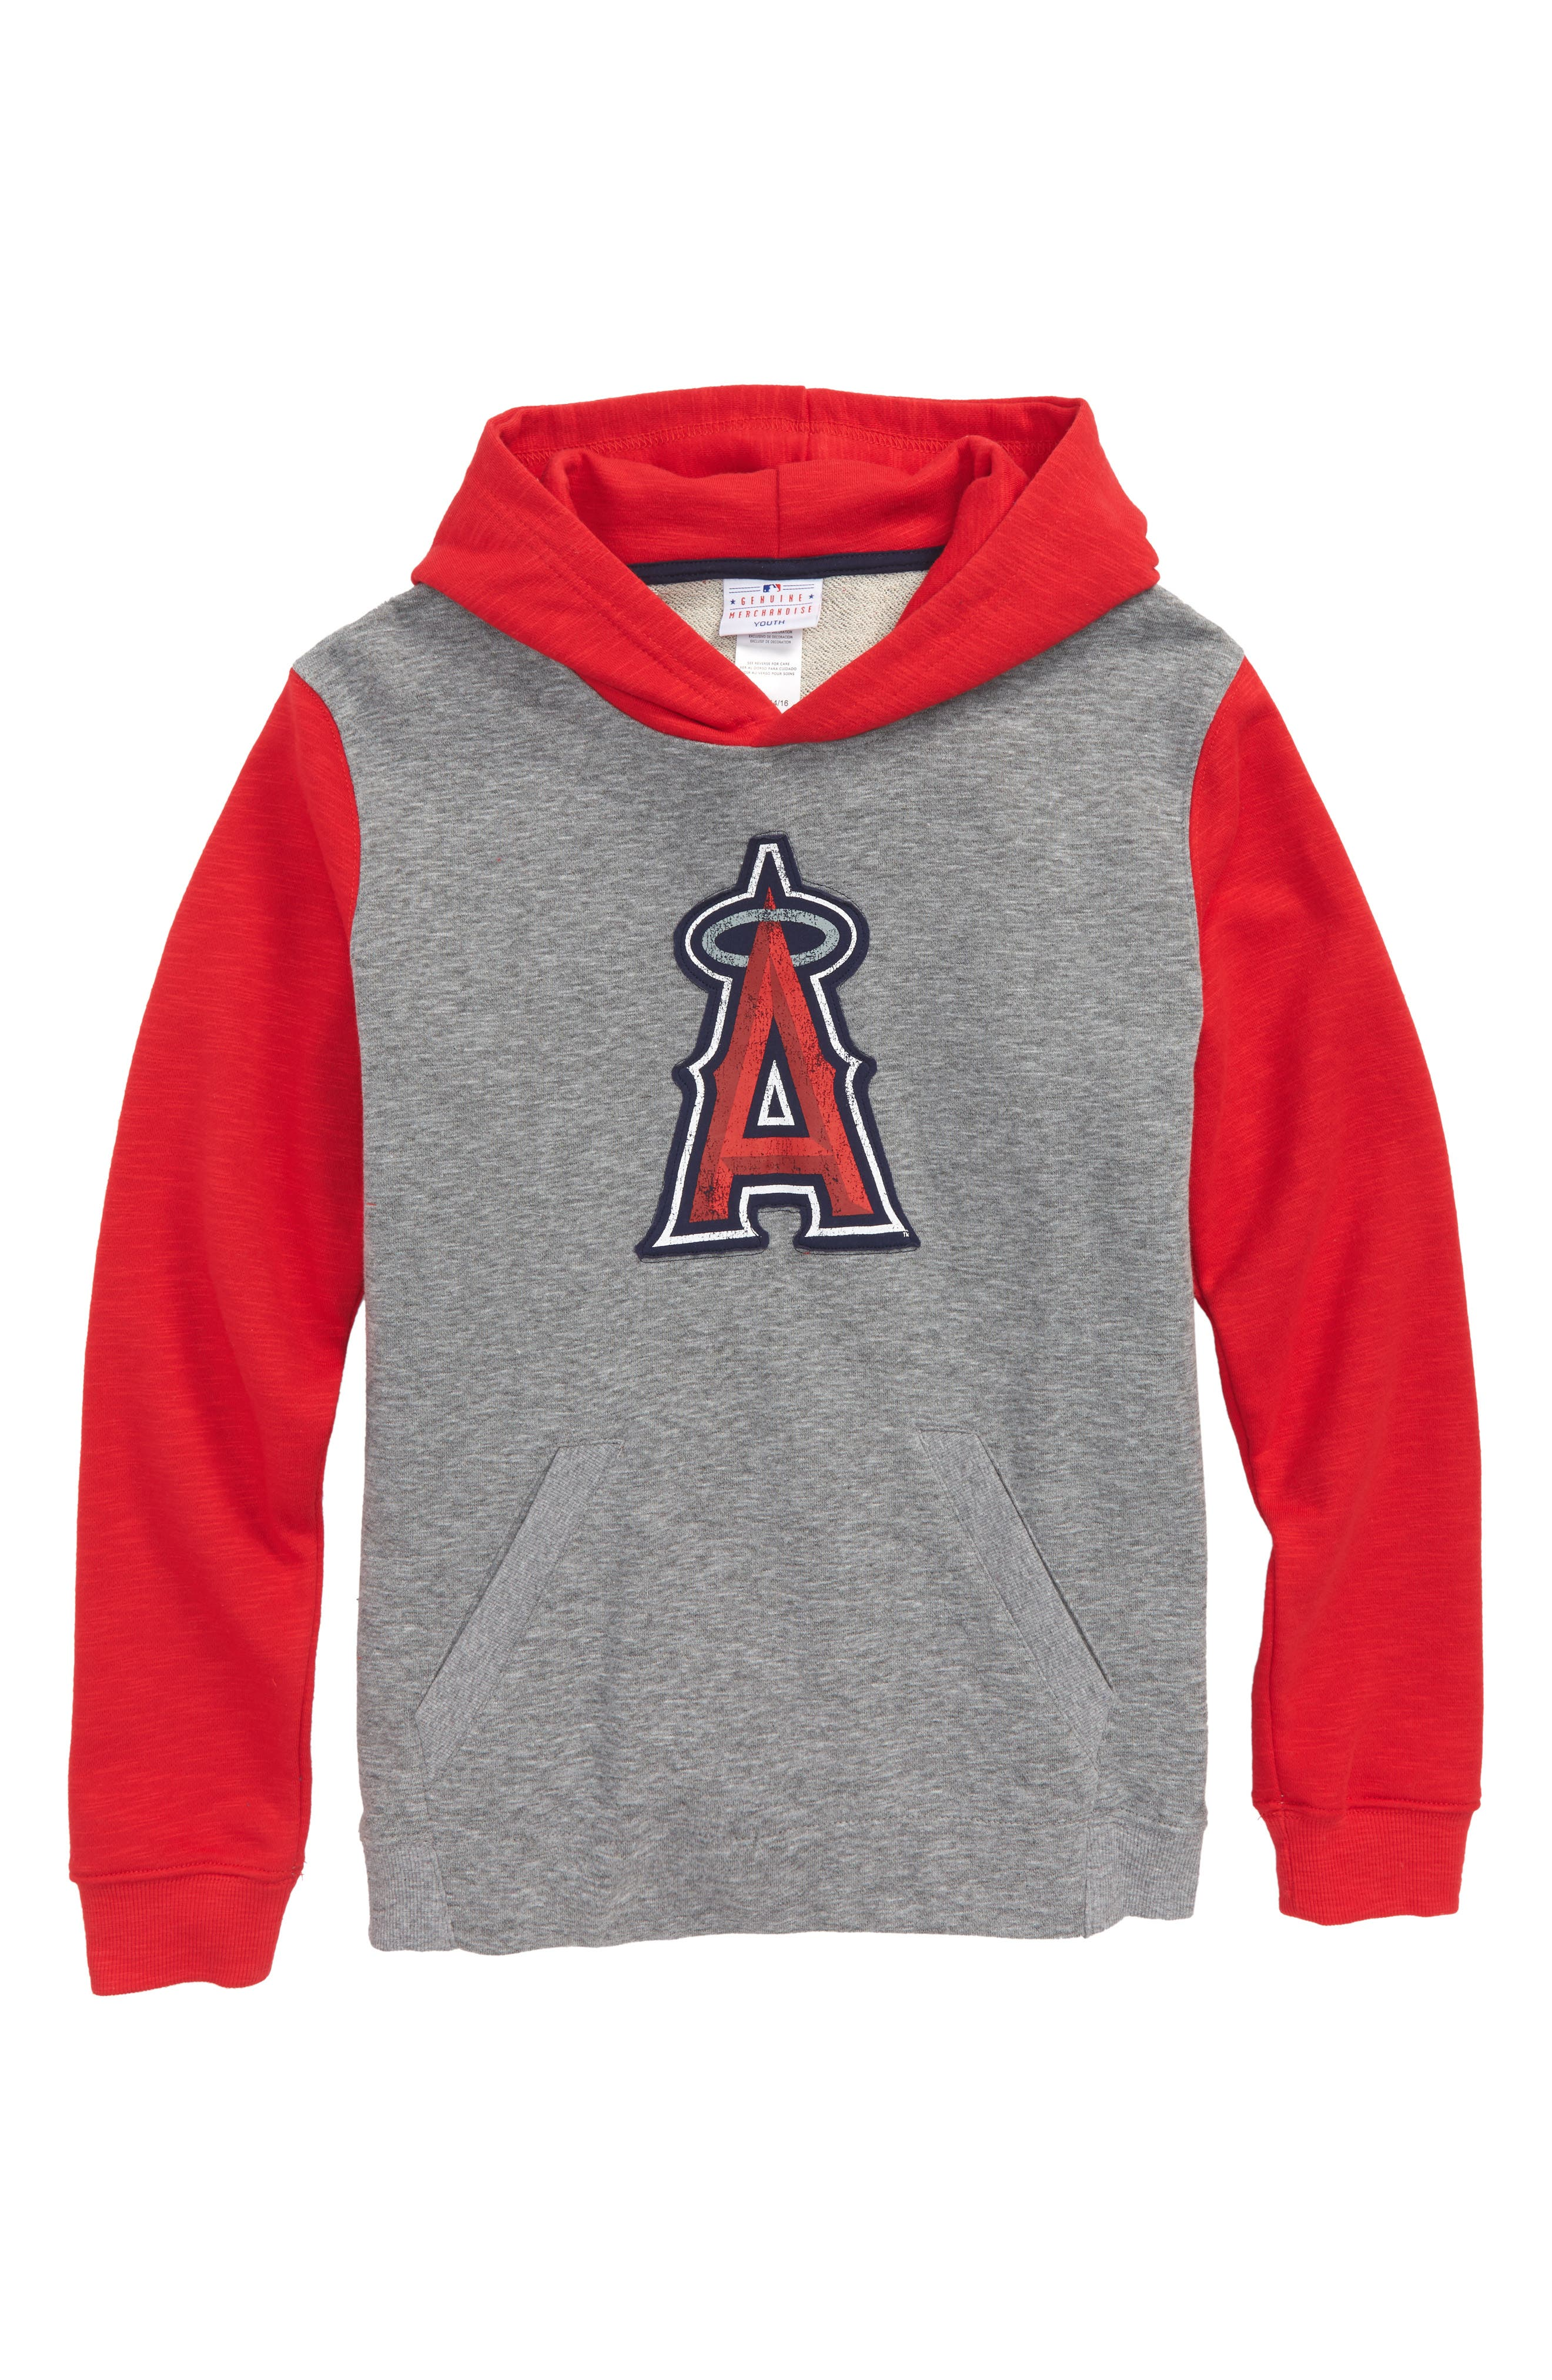 New Beginnings - Anaheim Angels Pullover Hoodie,                             Main thumbnail 1, color,                             020